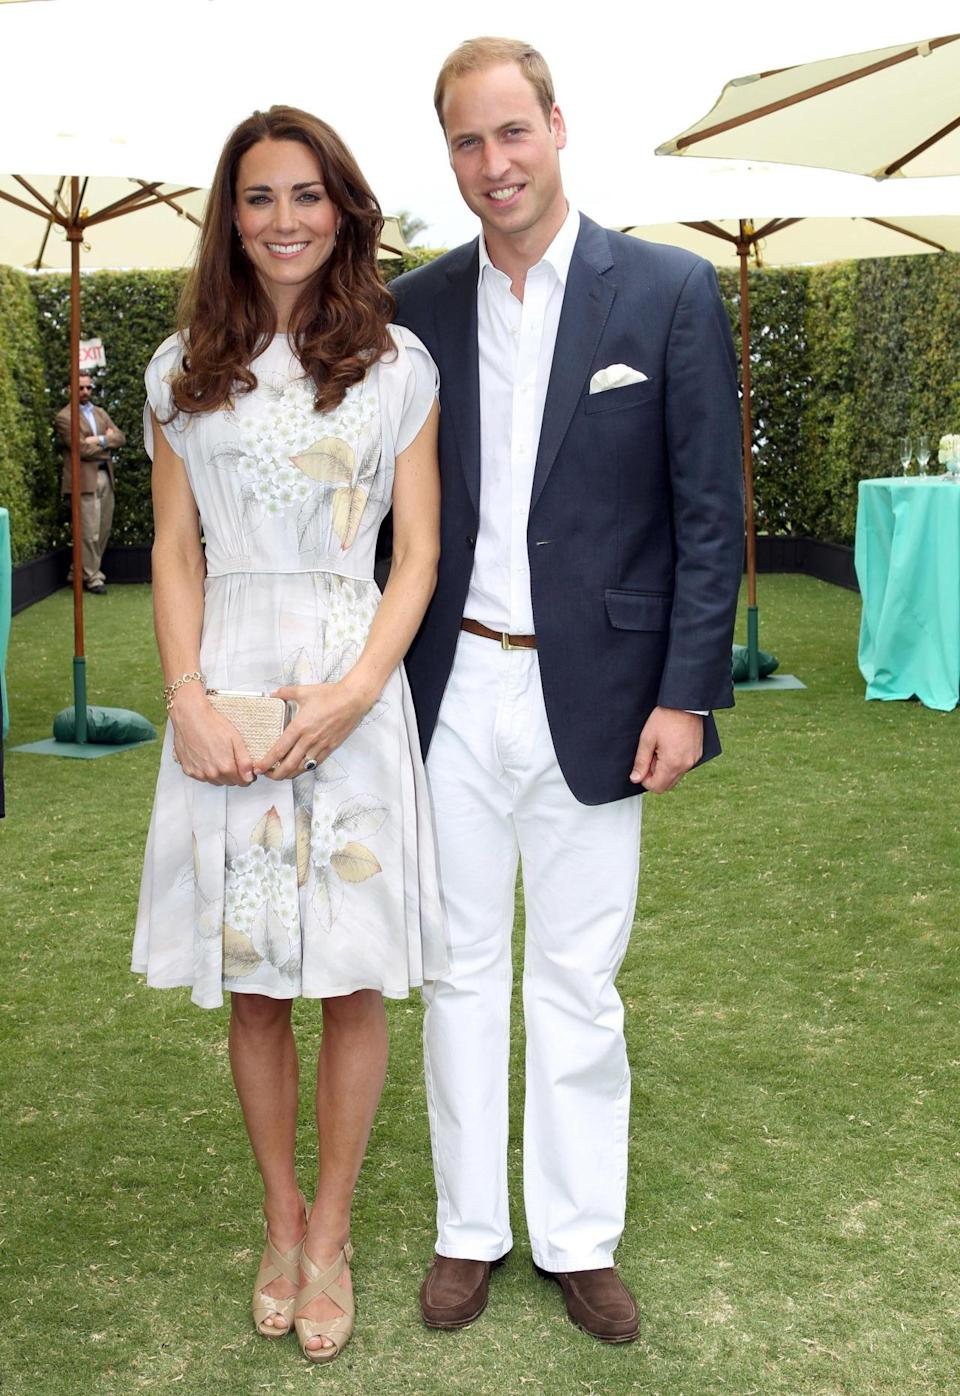 <p>The Duchess wore a handpainted silk dress by Jenny Packham for a polo match in Santa Barbara. L.K. Bennett sandals and a matching bag topped off her outfit. </p><p><i>[Photo: PA]</i></p>